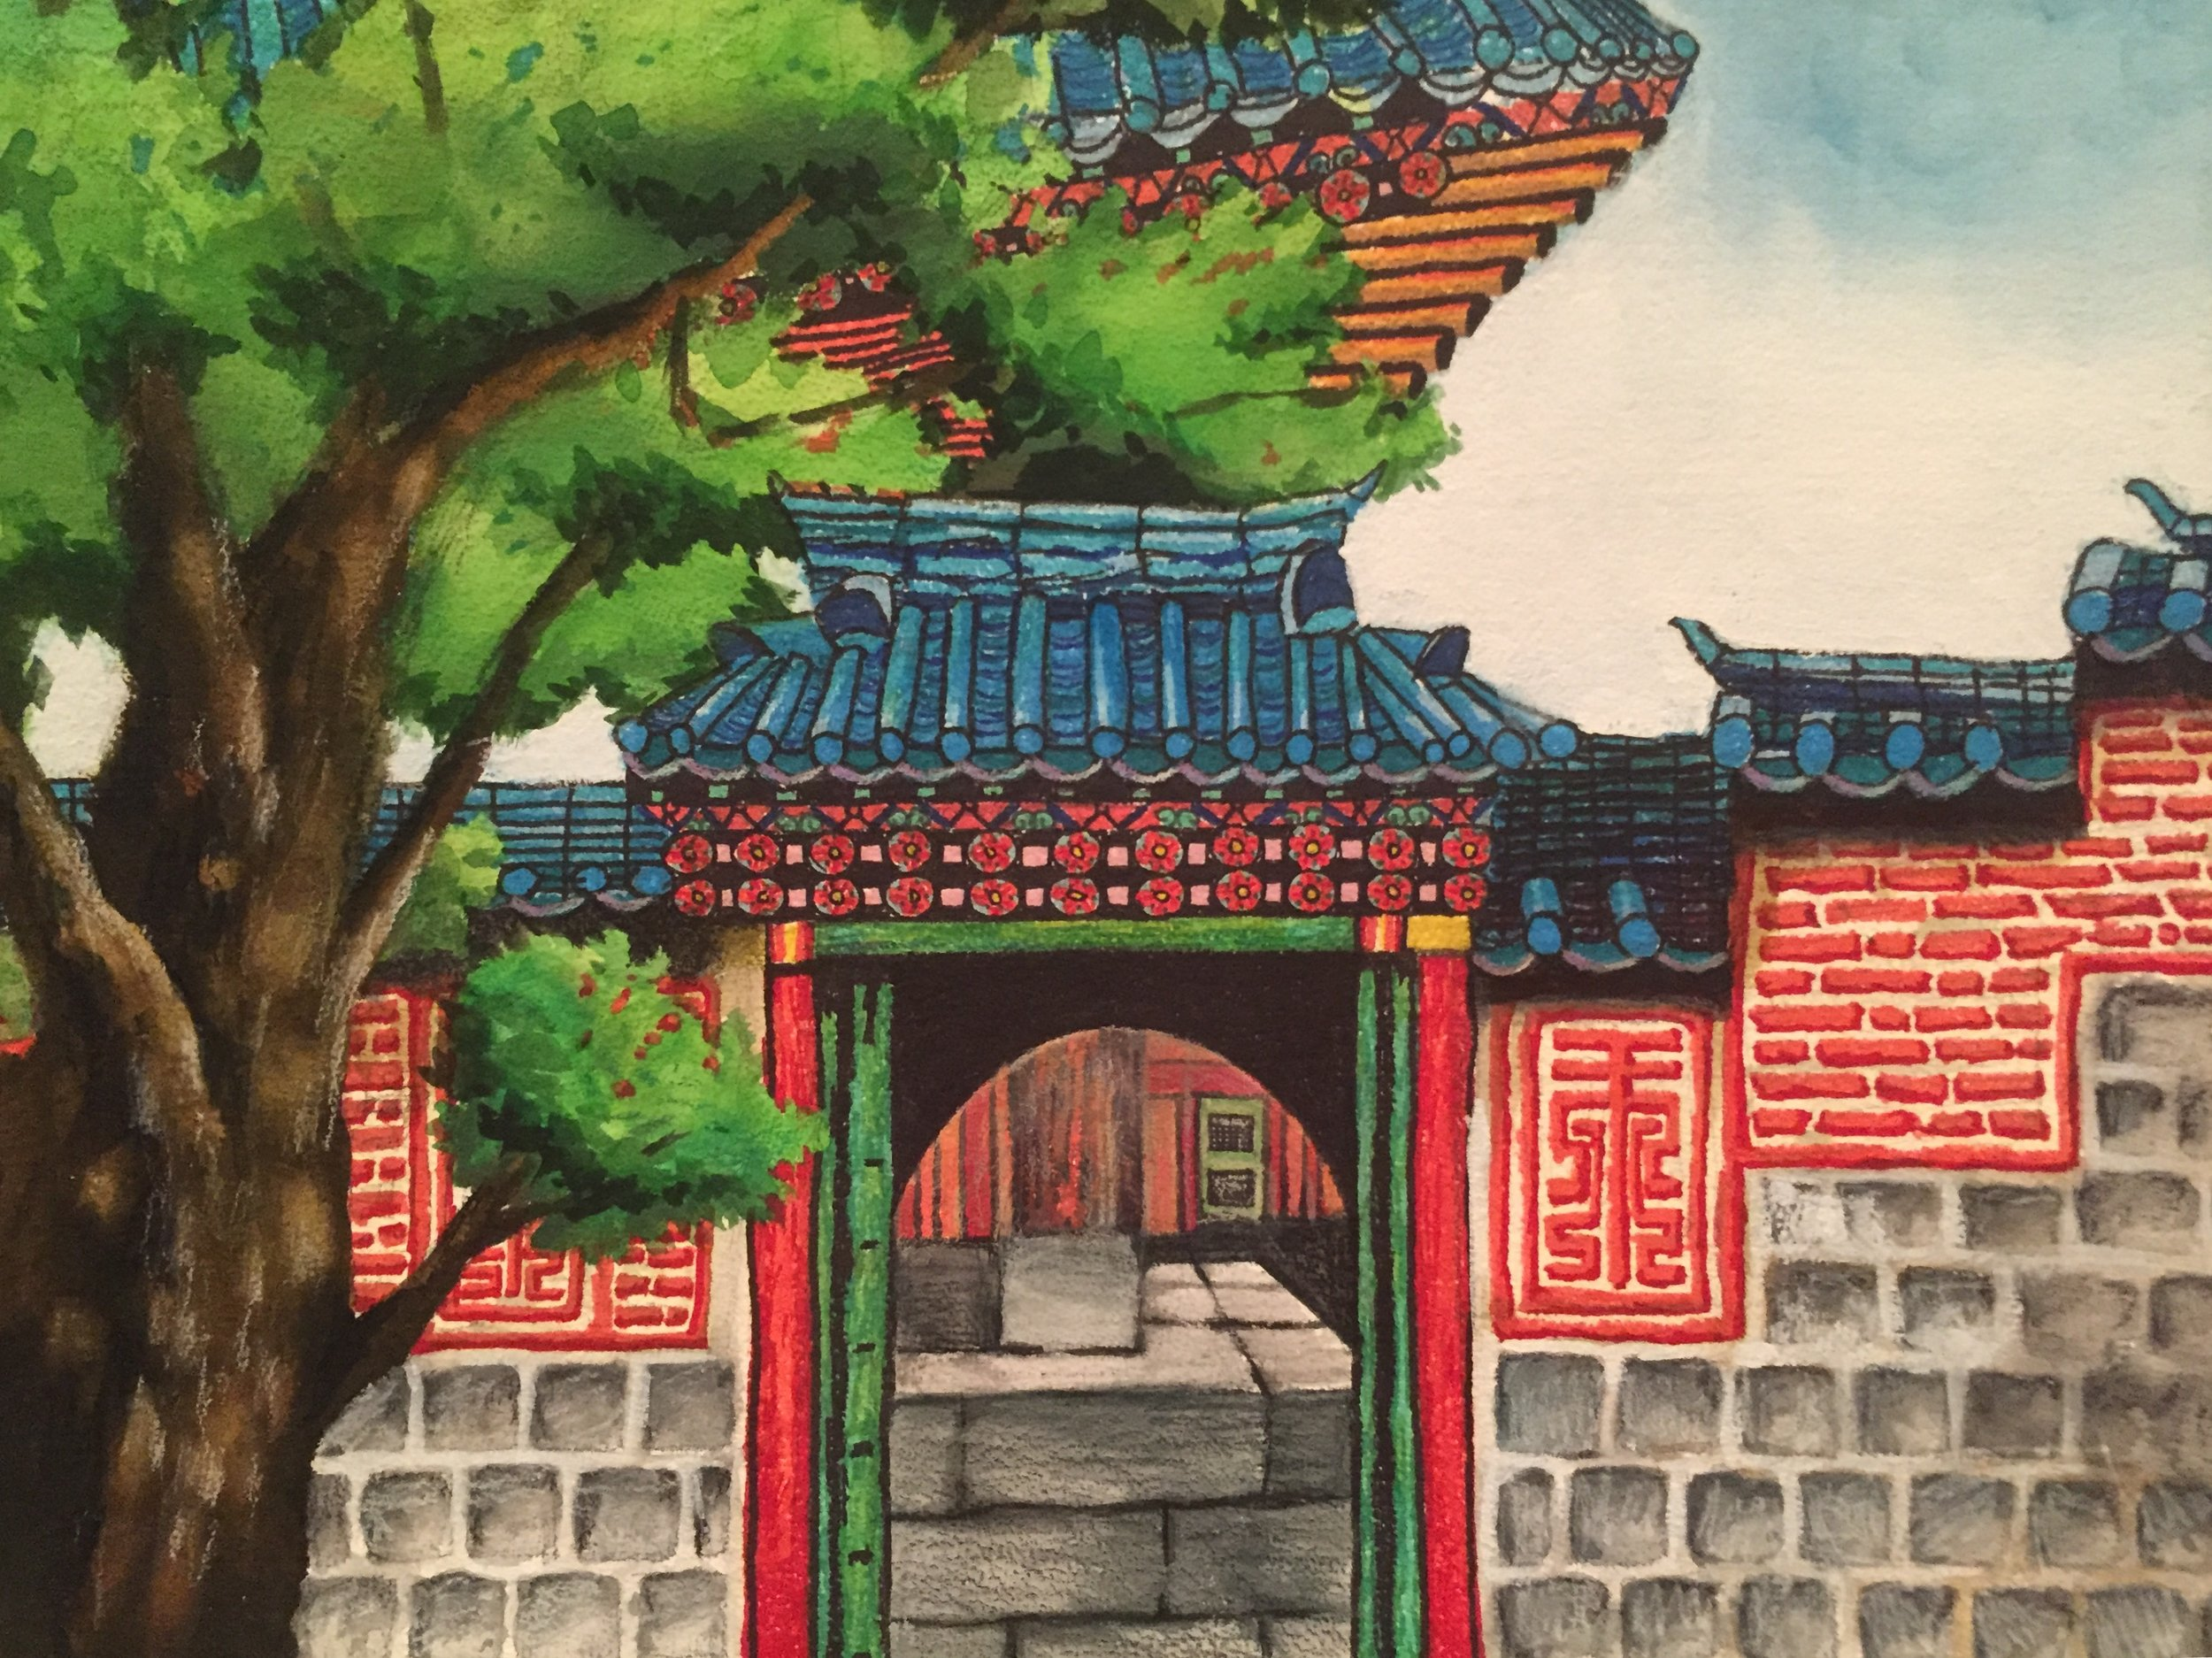 Wong Gung (King's Palace),  Gel Pens and Colored Pencils on Watercolor